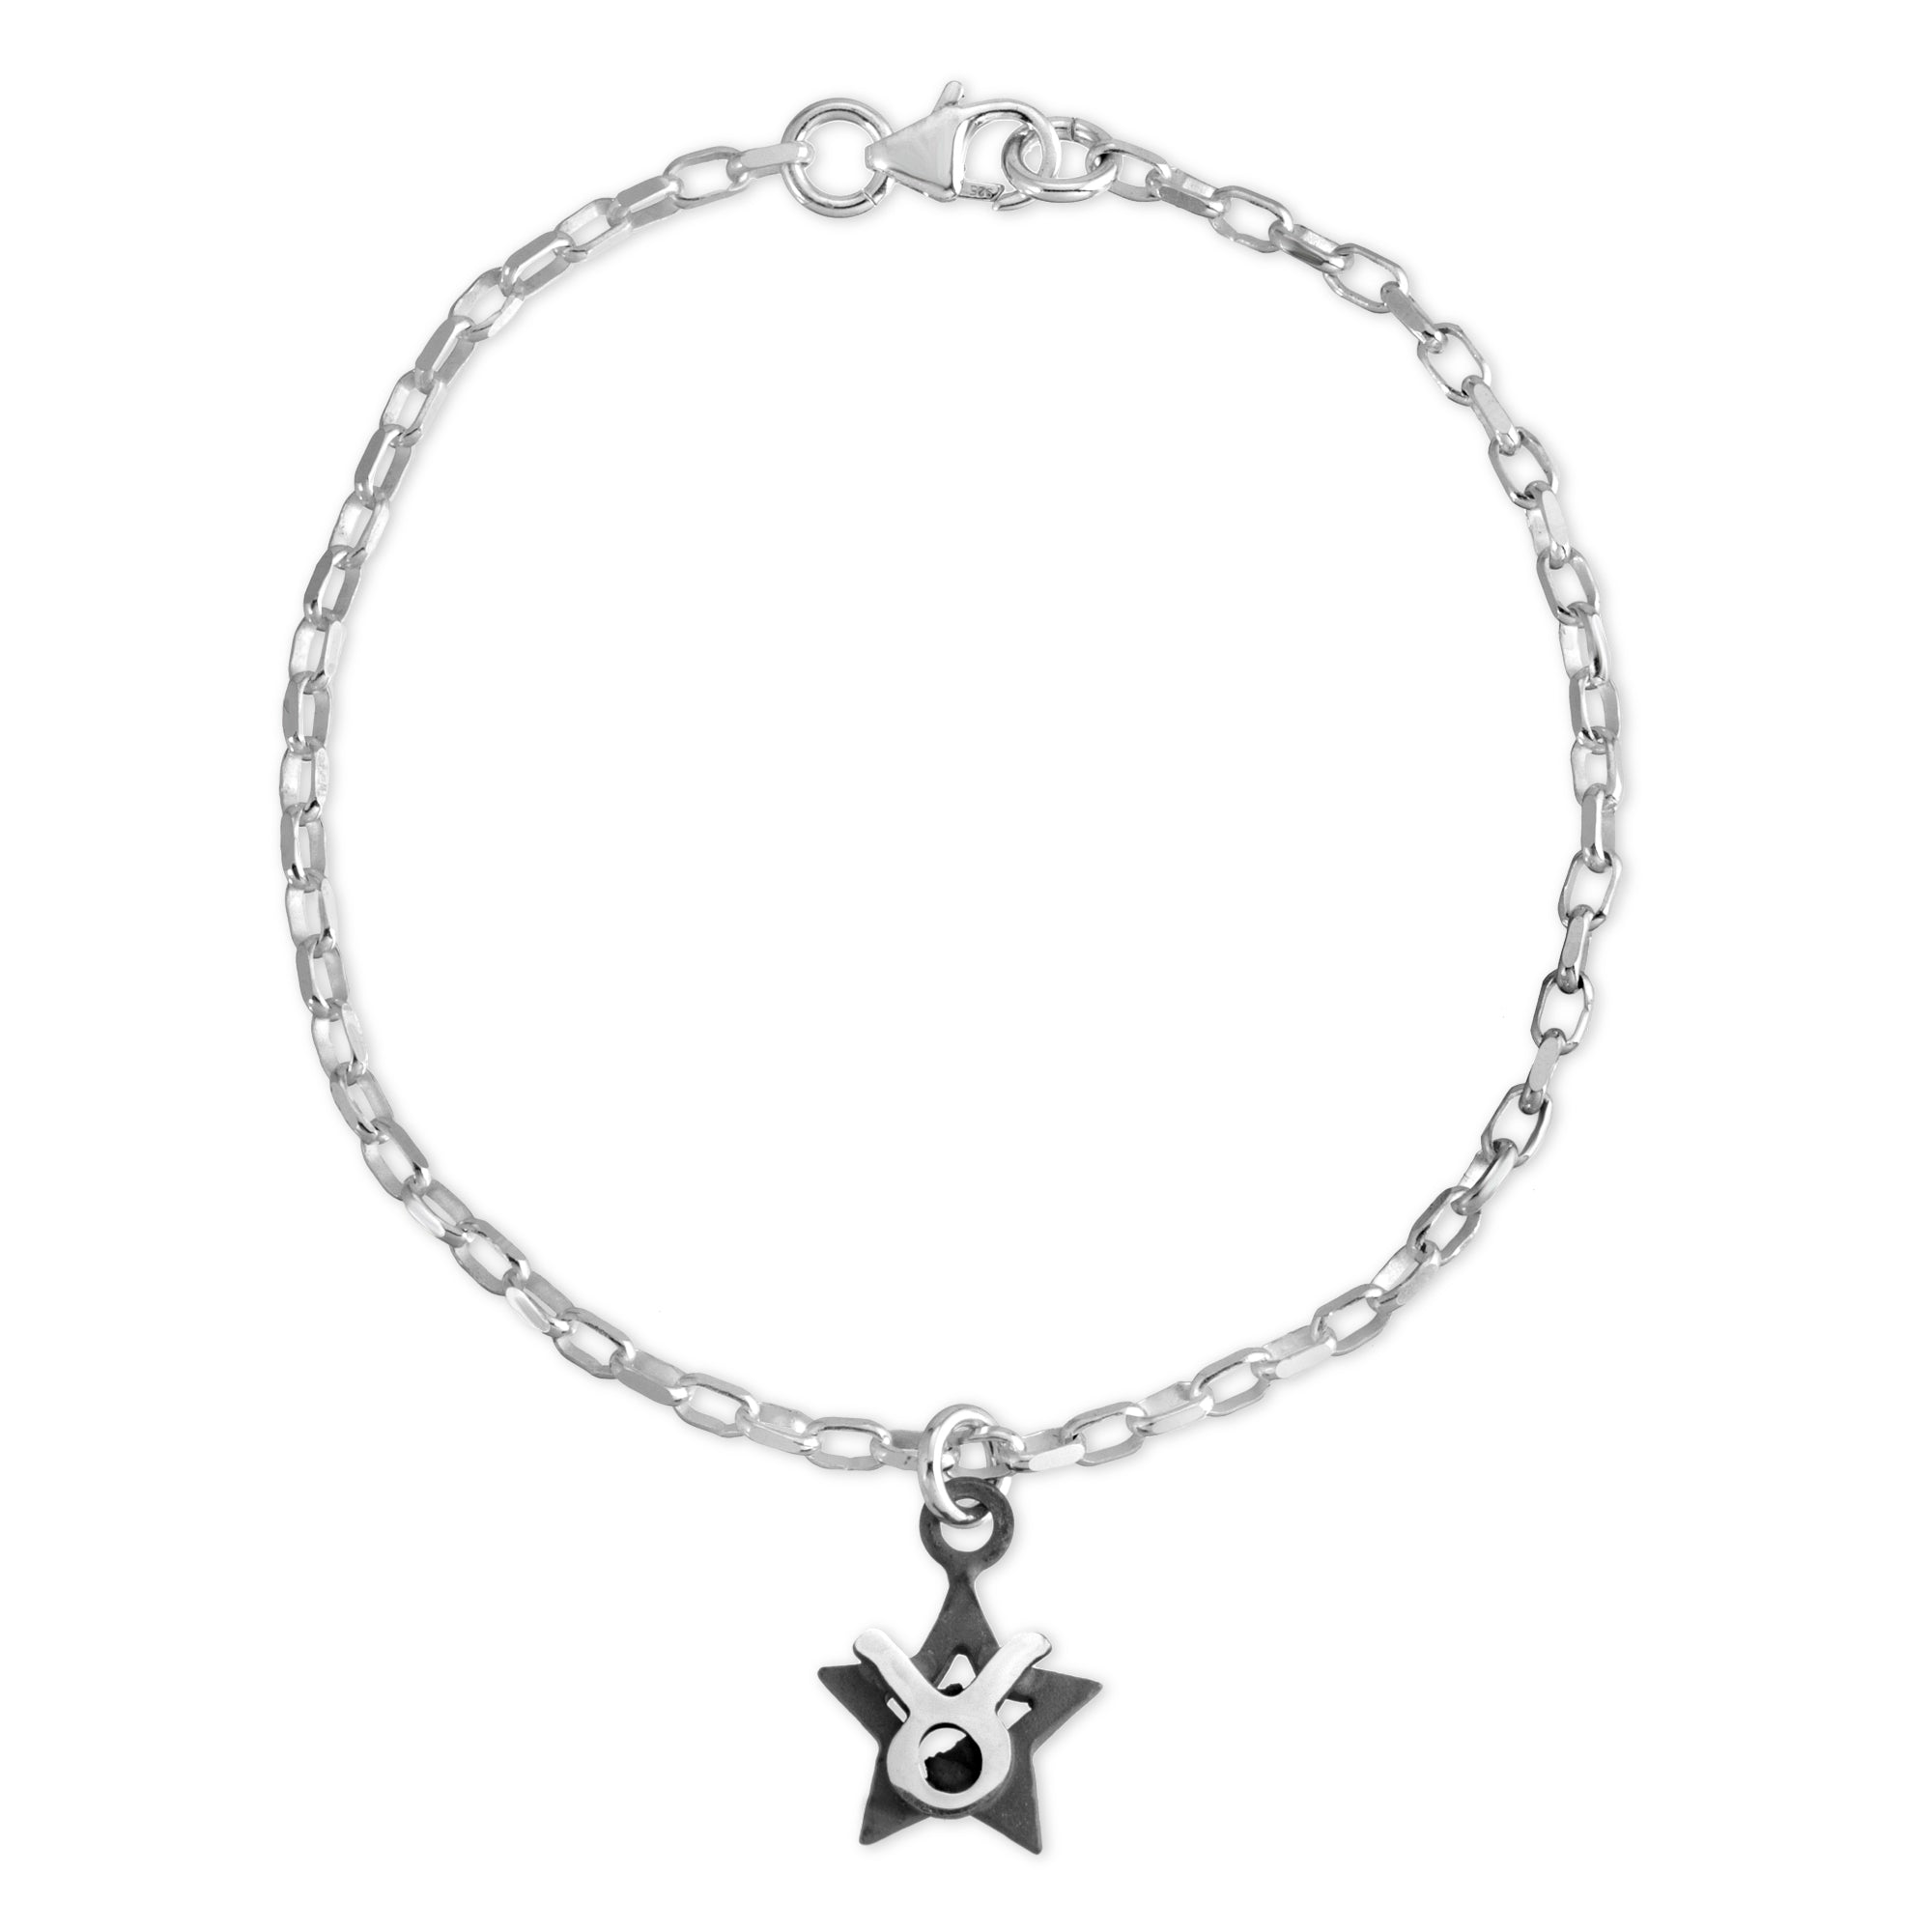 The W Brothers Sterling silver zodiac horoscope Taurus charm bracelet crafted to perfection in premium 925 Sterling silver, available in silver, real 18k gold or rose gold layering. Shop your star-signs at thewbros.com